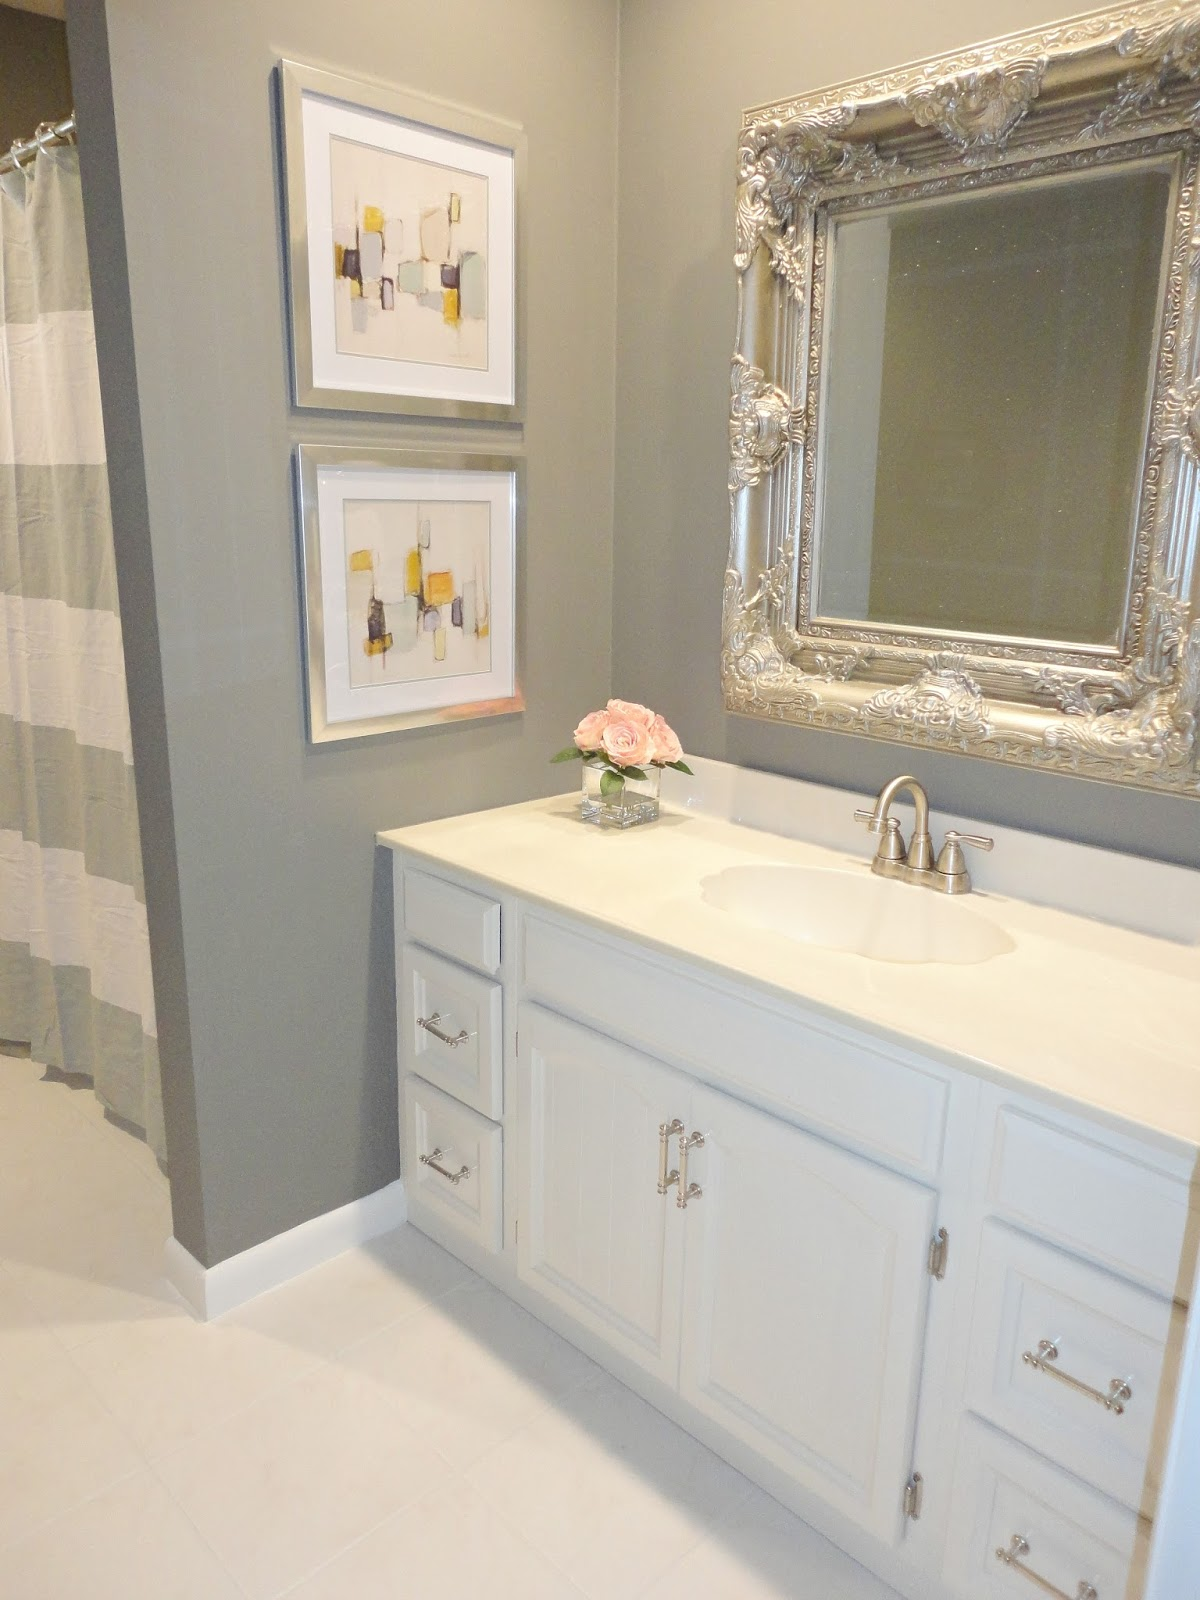 Livelovediy diy bathroom remodel on a budget for Images of bathroom remodel ideas